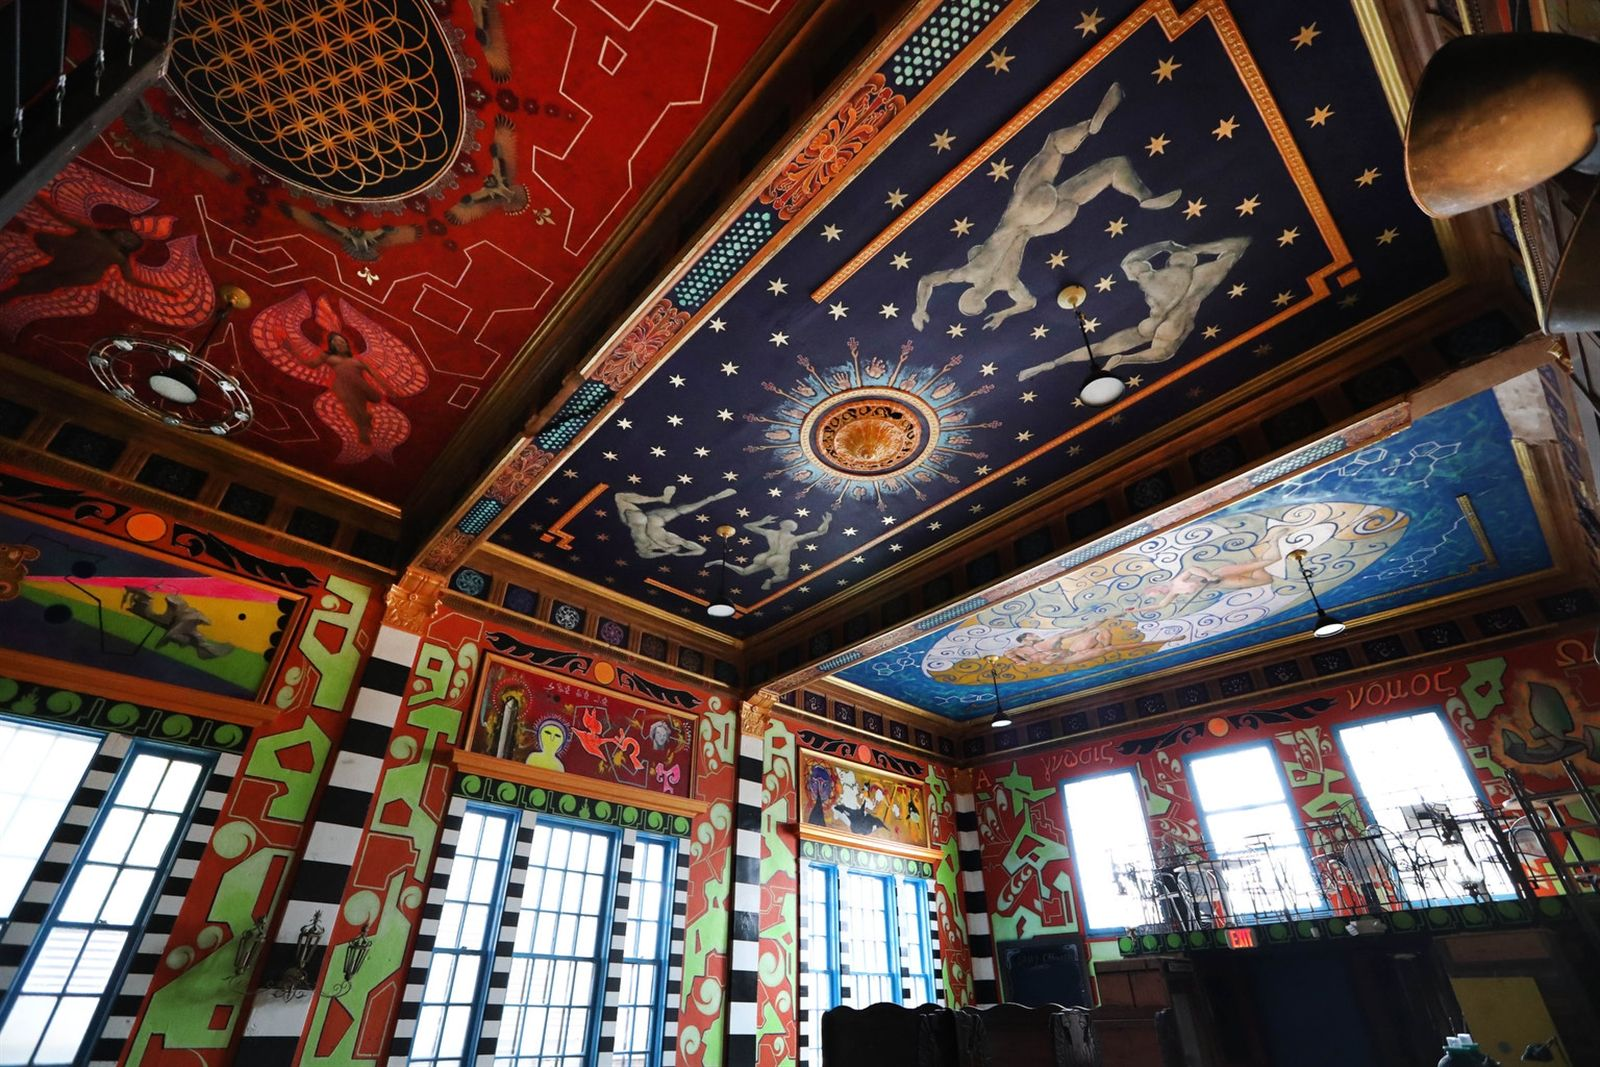 A look at the Tabernacle's ceiling, which has panels dedicated to different themes and created in markedly different styles.